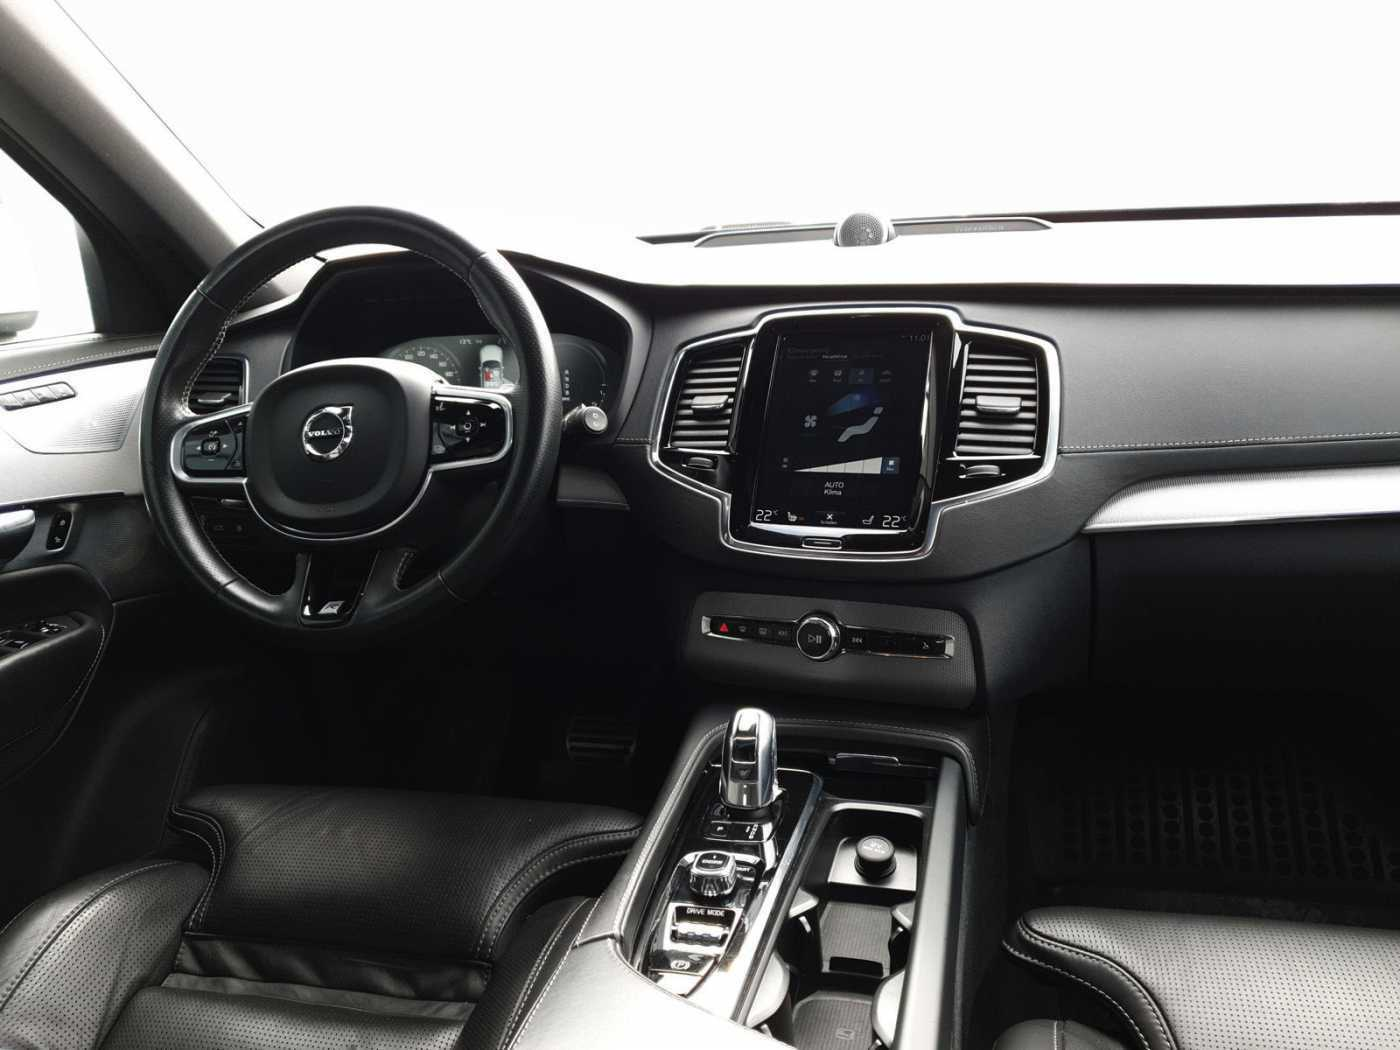 VOLVO - XC90 T8 Twin Engine Geartronic RDesign AHK/HUD/7